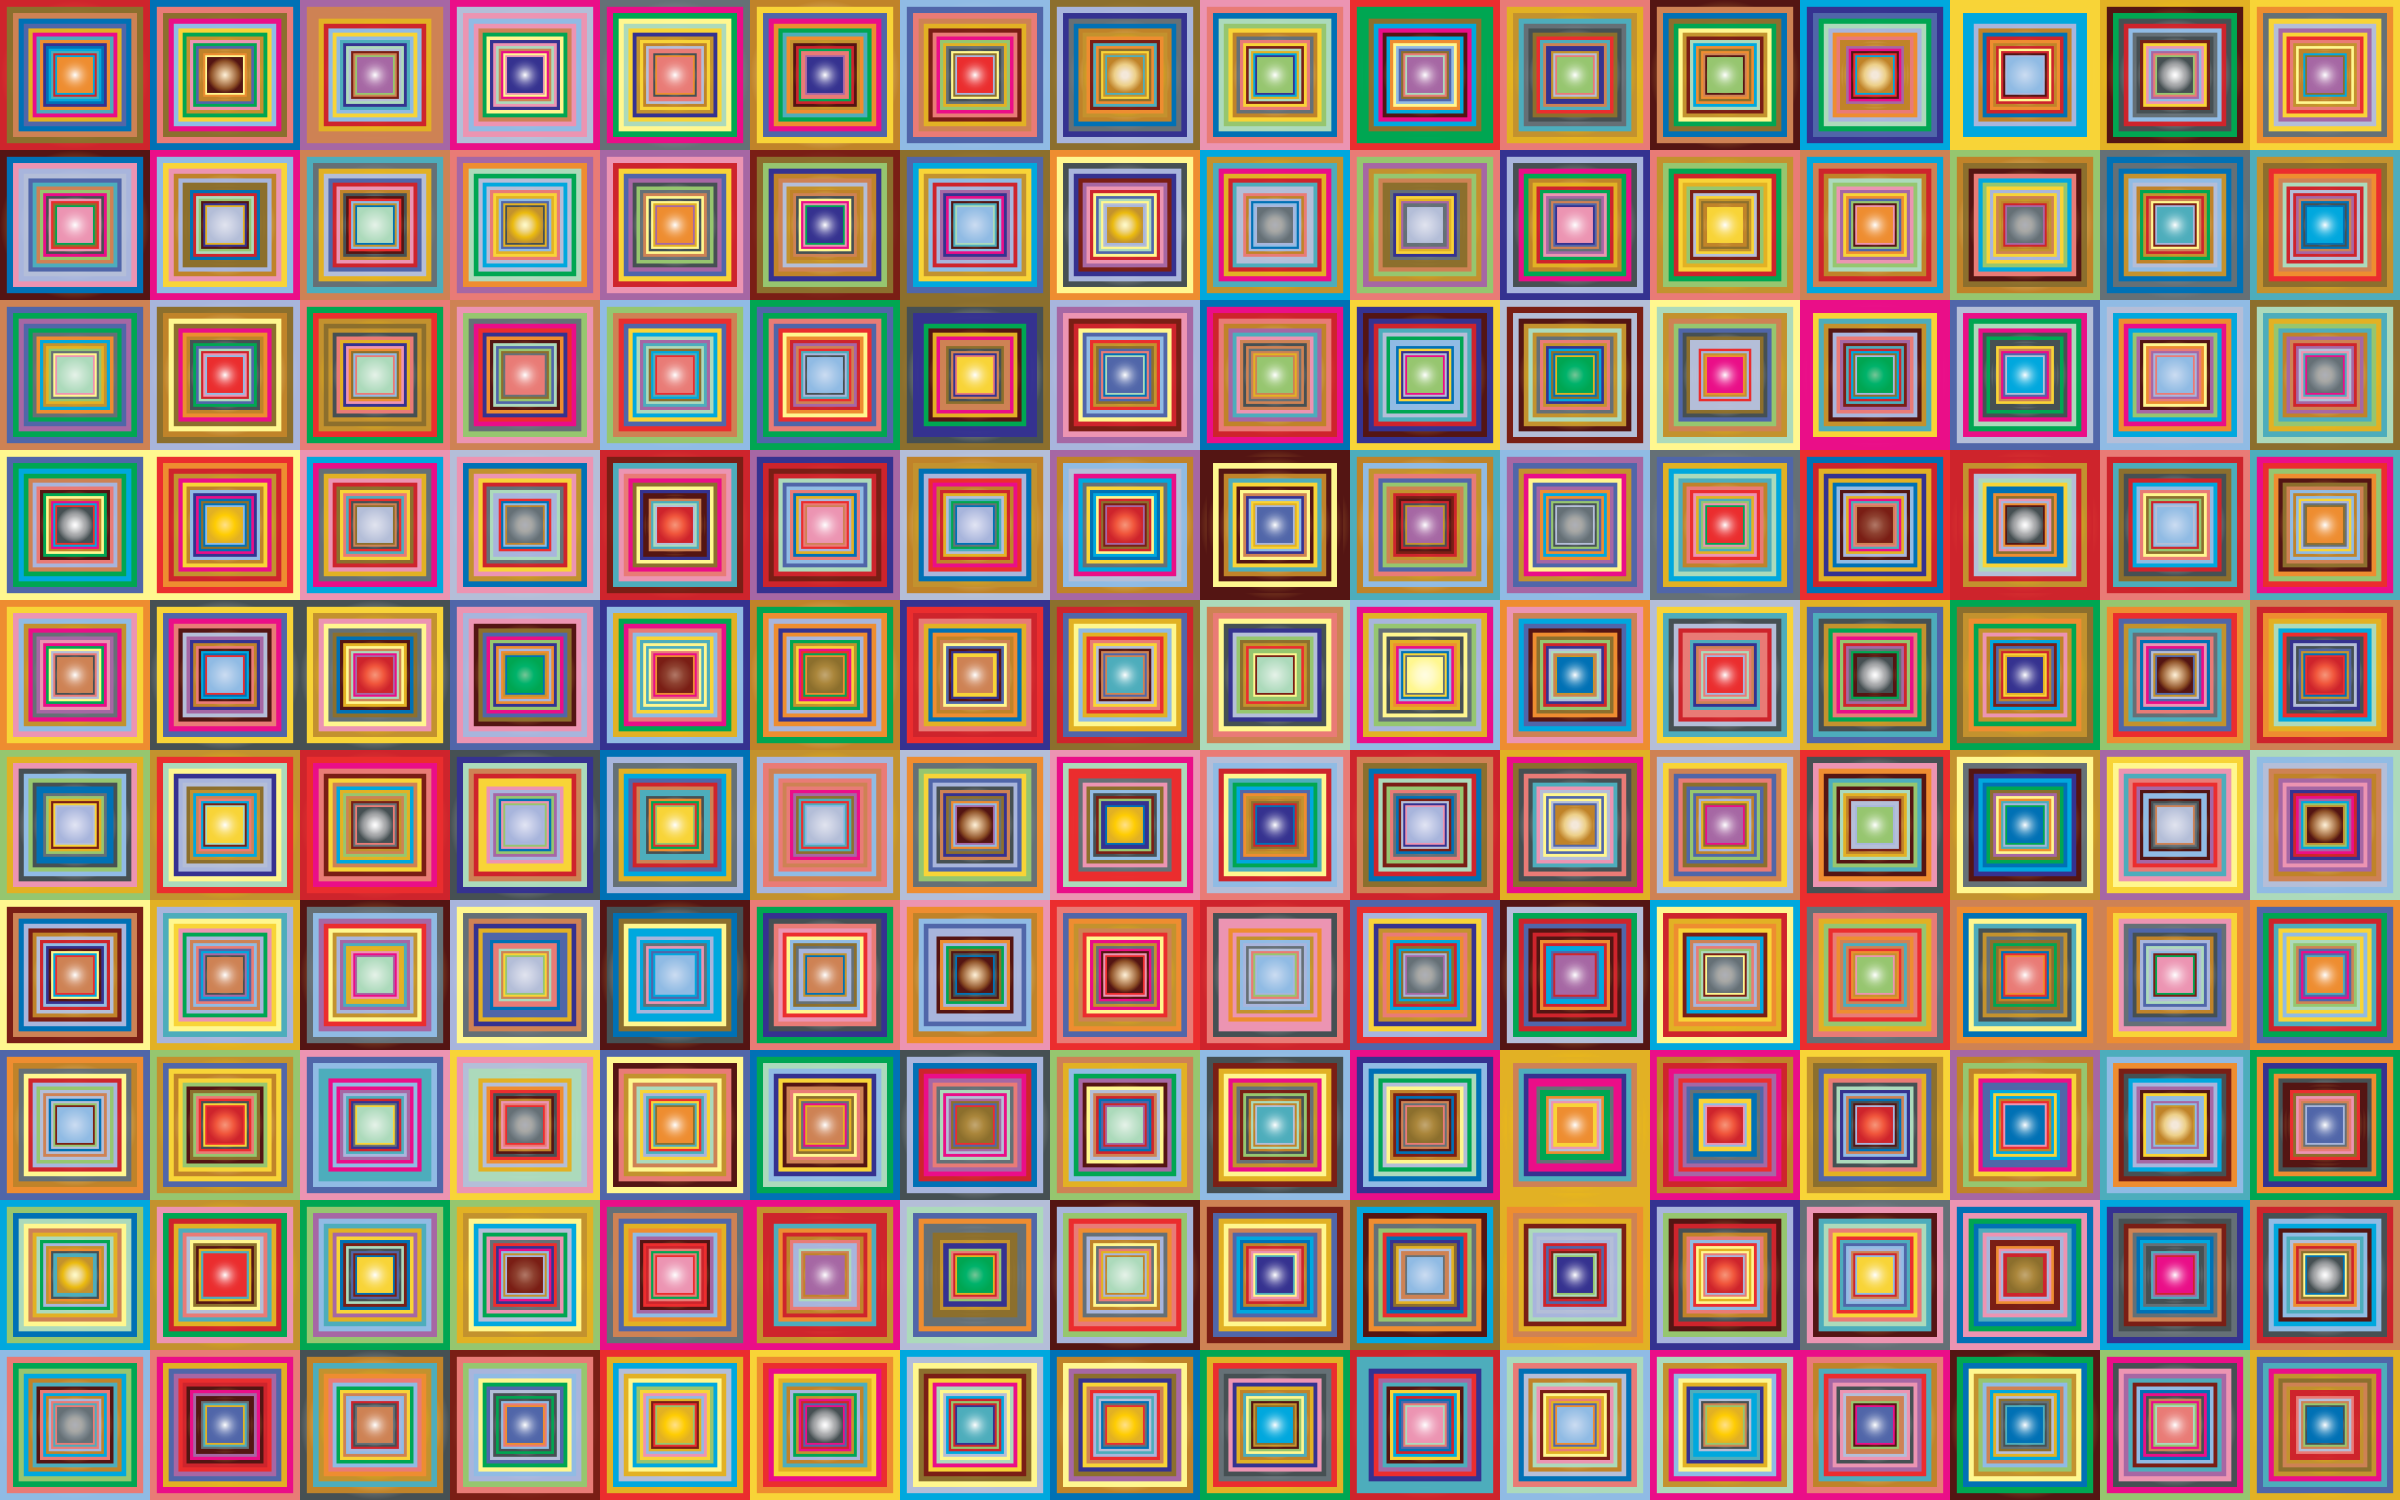 Retro Squares Background 2 by GDJ